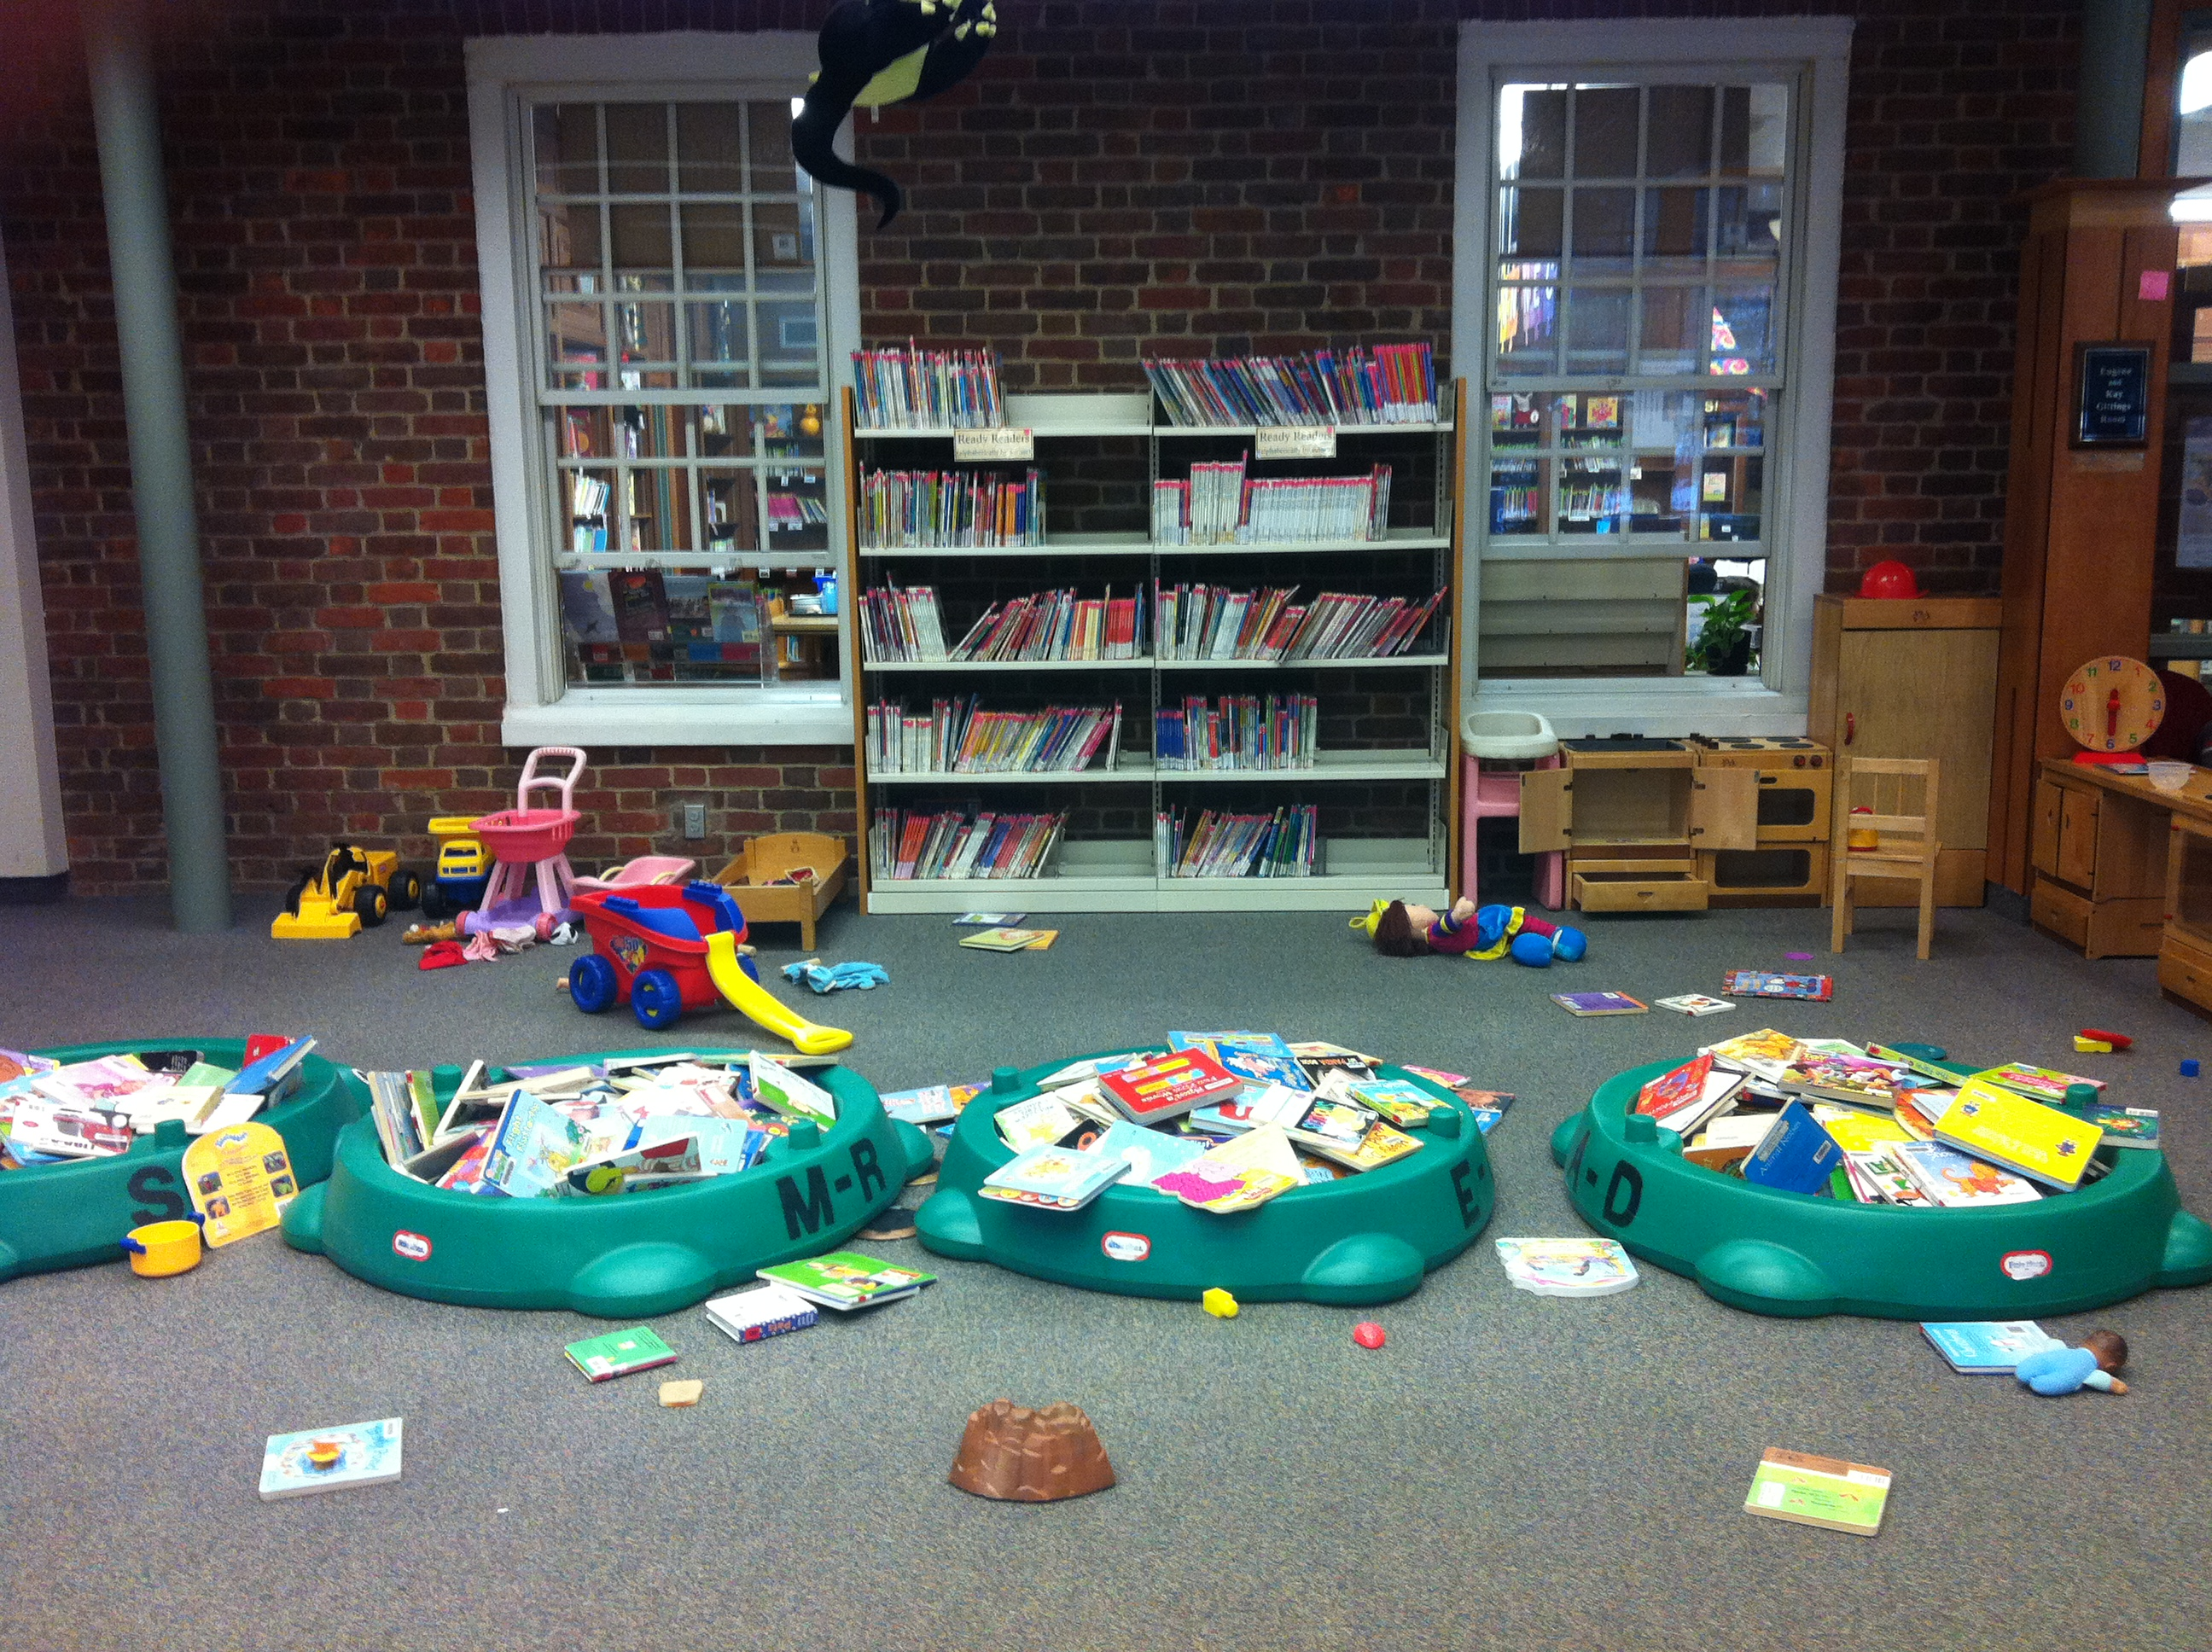 Family guide to indoor play spaces in pittsburgh and vicinity for Children indoor